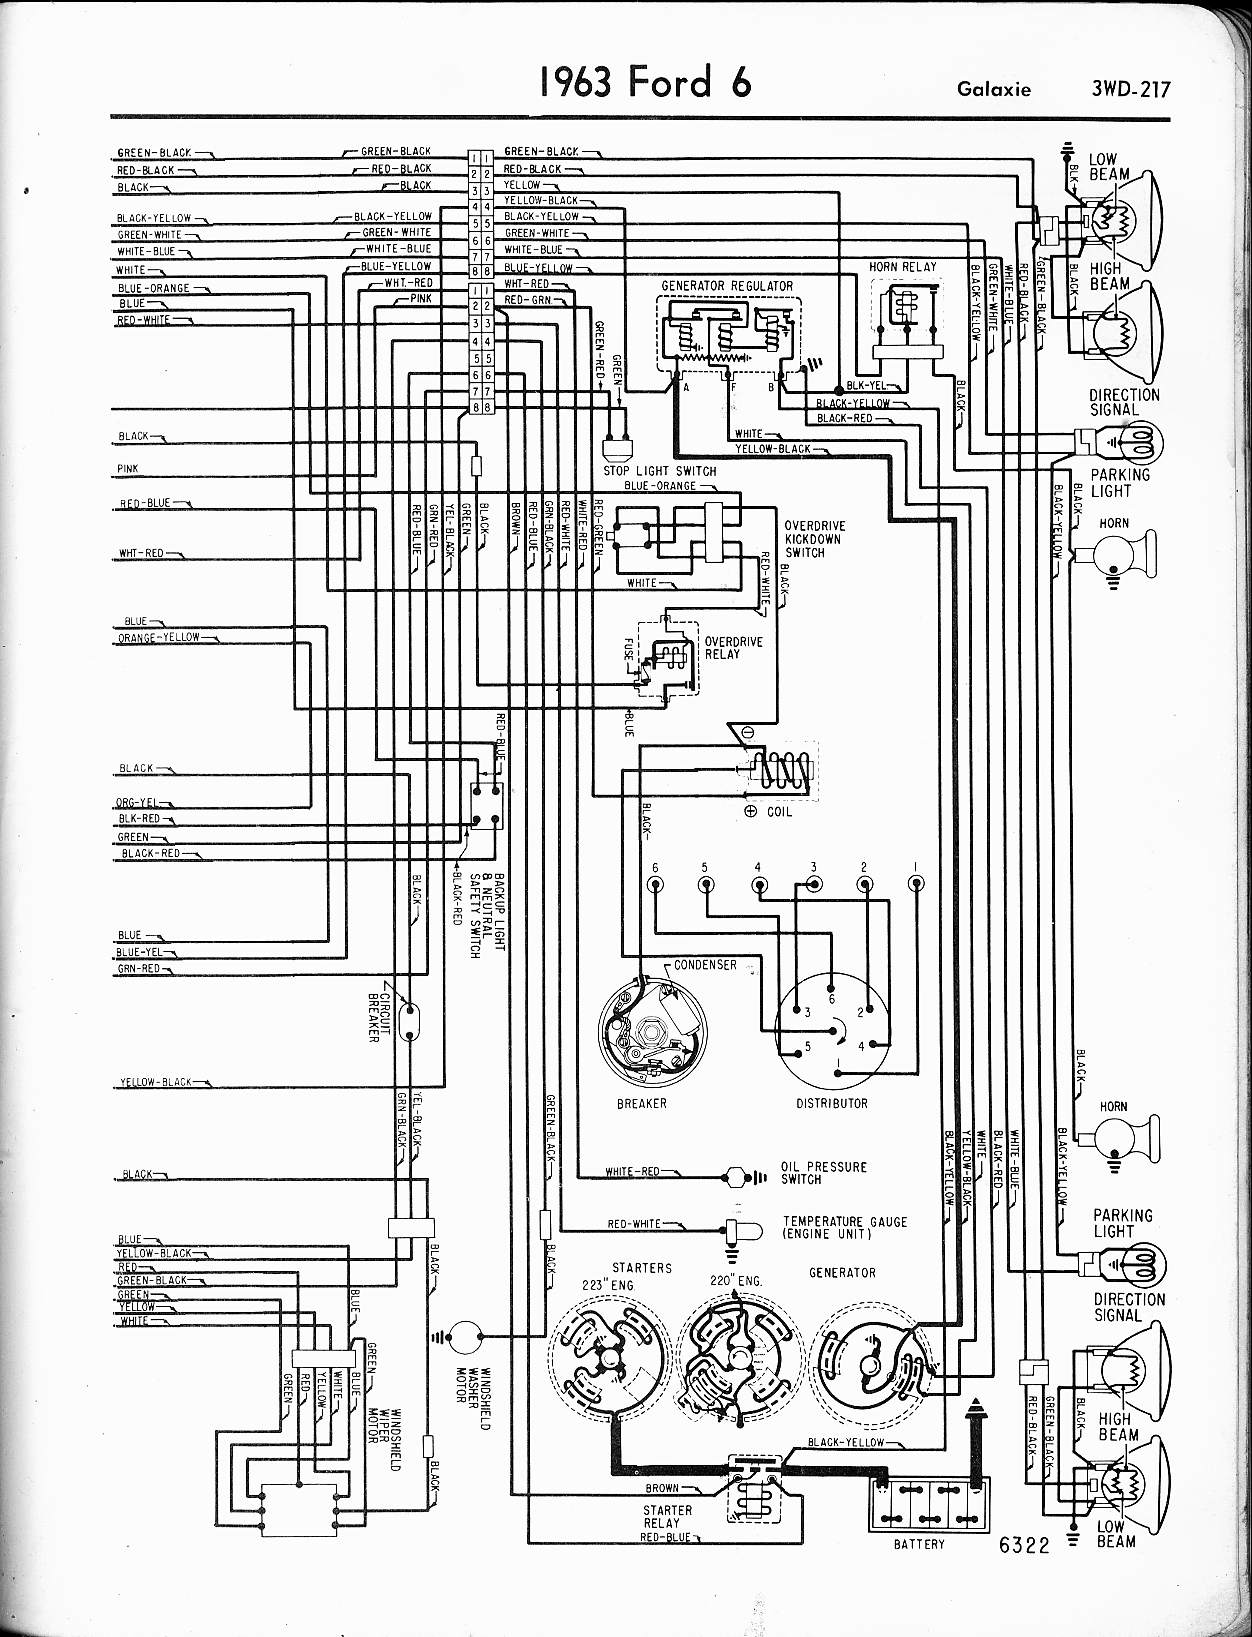 MWire5765 217?resize=665%2C869 62 galaxie underhood wiring diagram 62 wiring diagrams collection  at alyssarenee.co